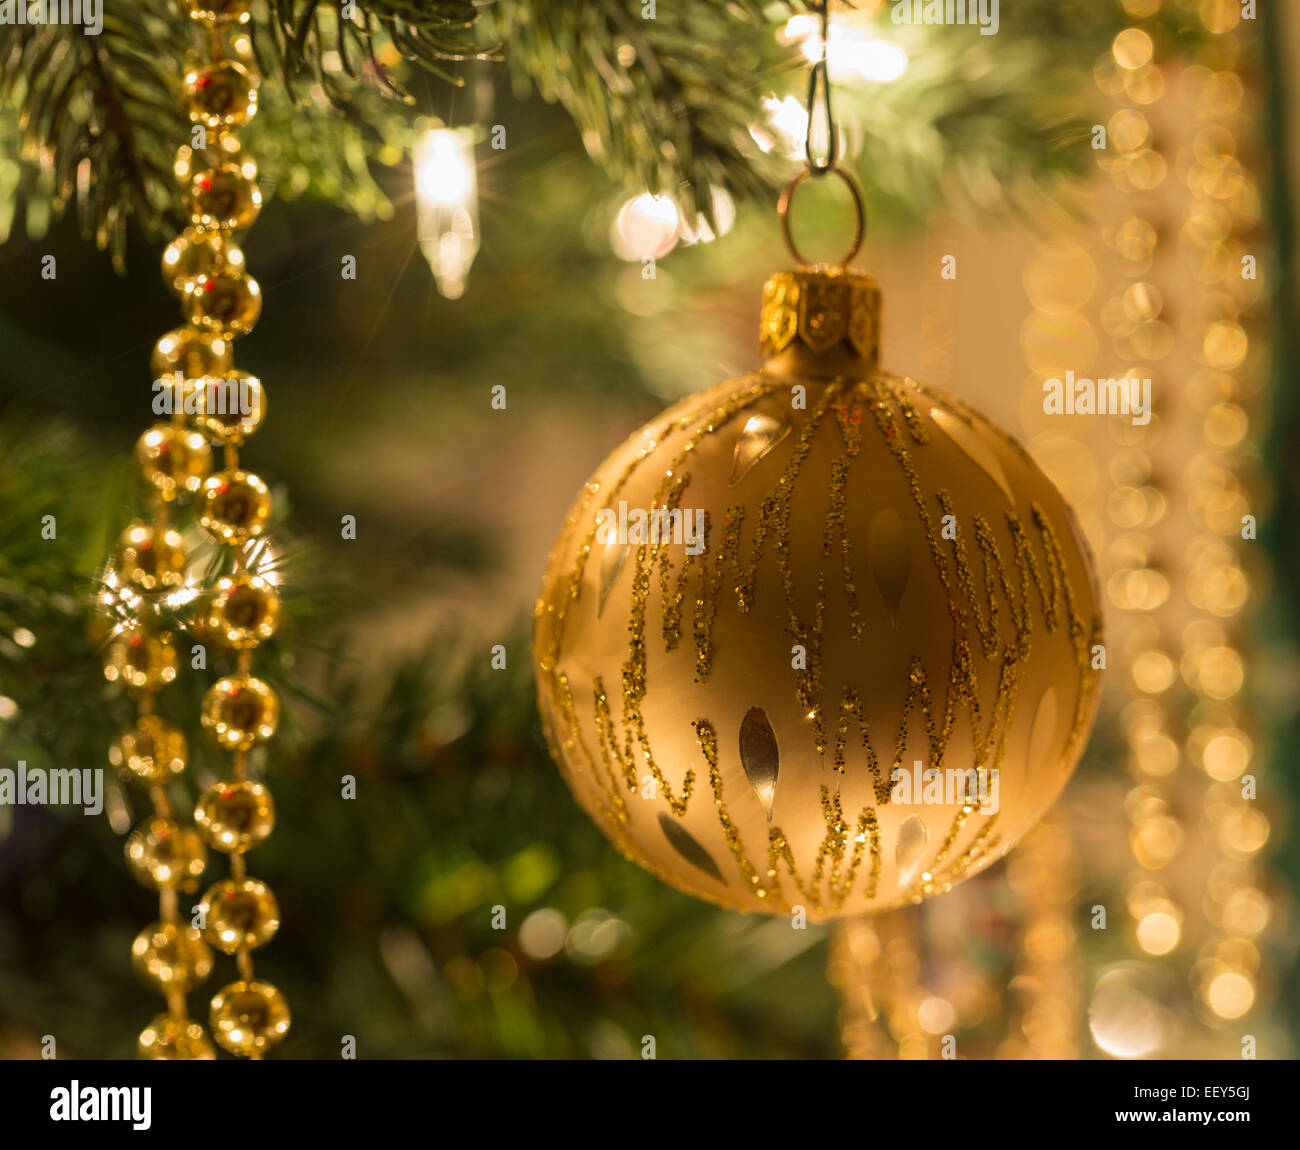 Christmas decorations on a Christmas tree illuminated by lights - Stock Image